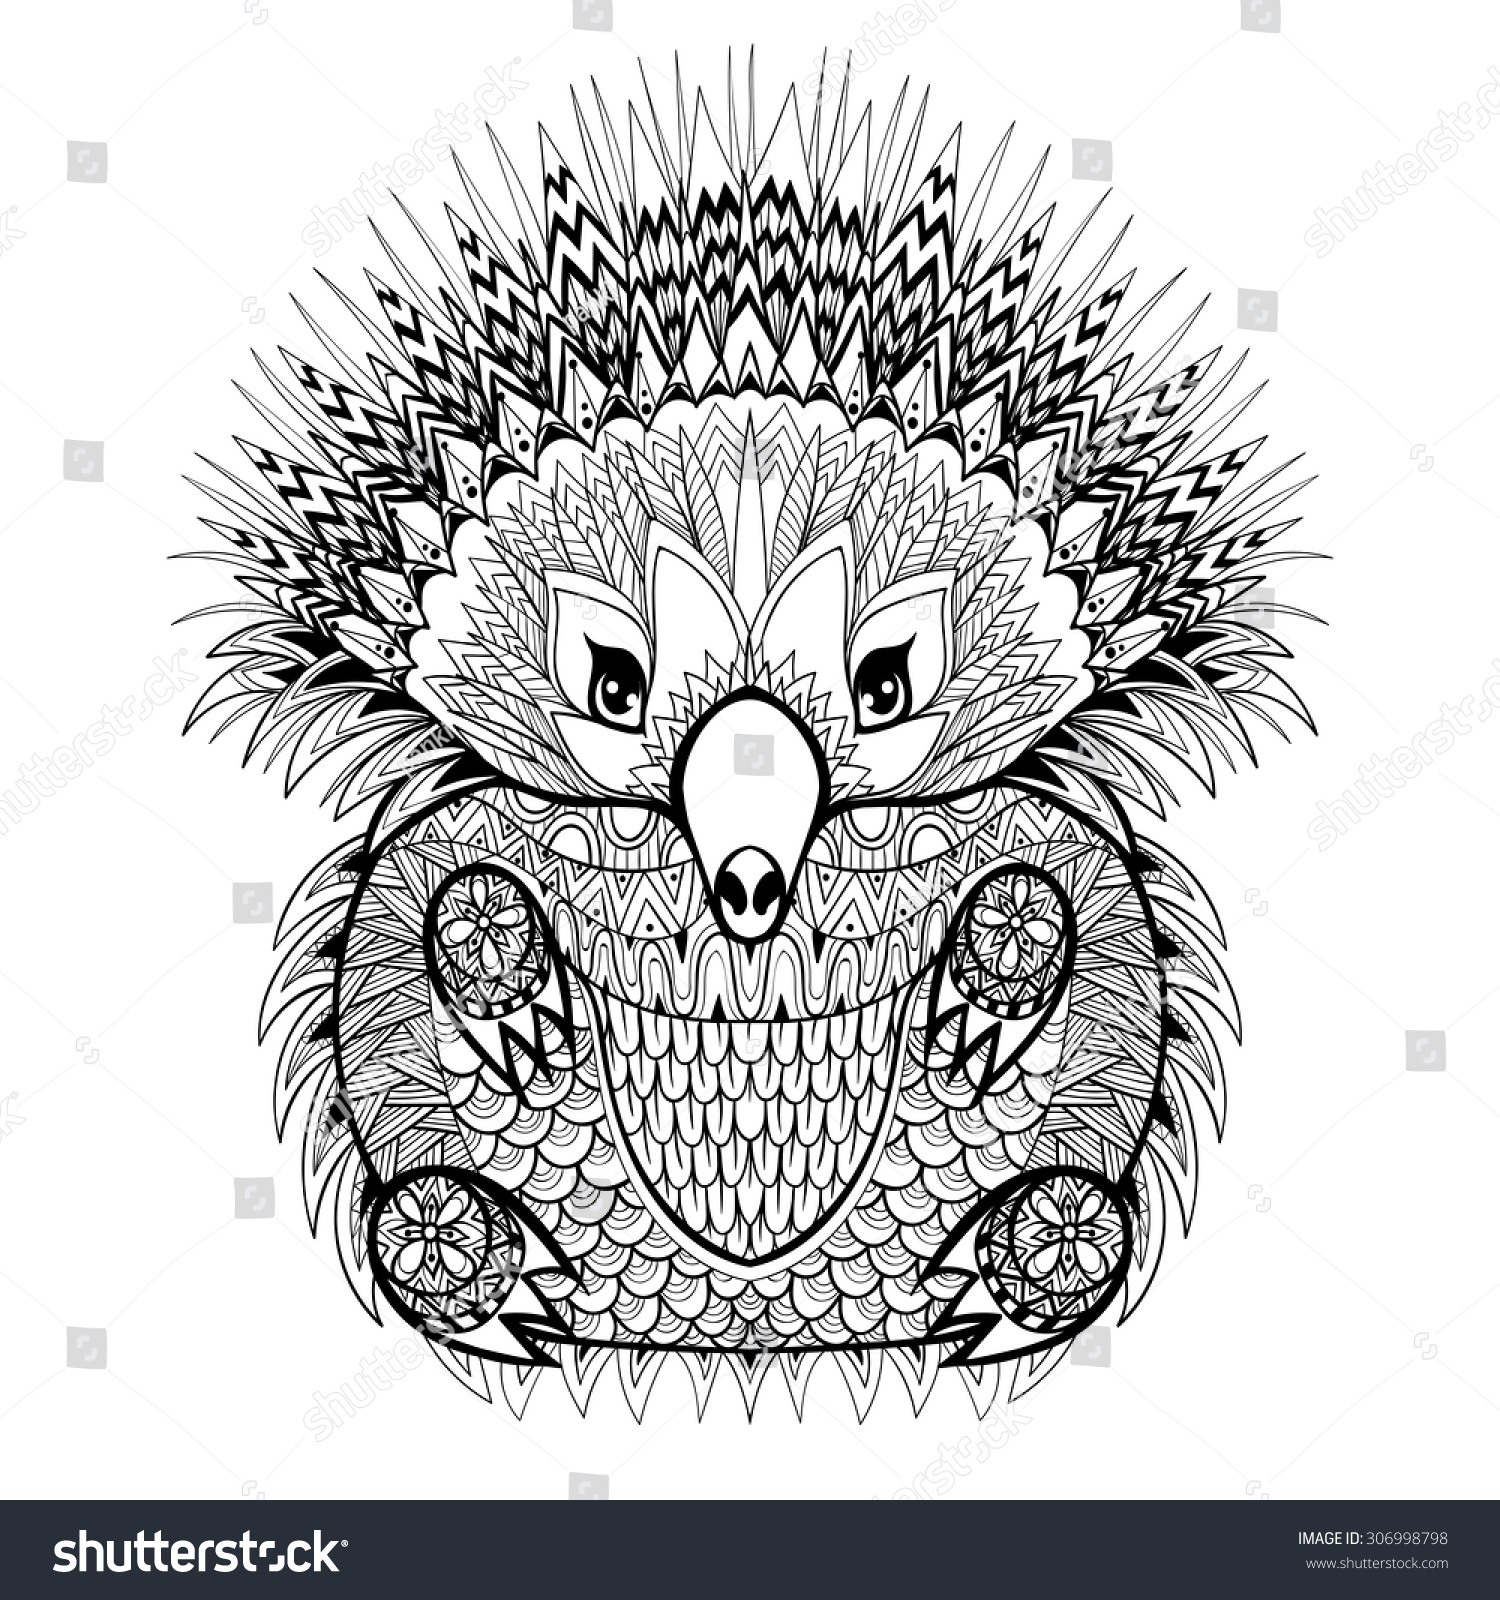 Coloring Pages Coloring Pages Of Animals For Adults coloring pages of animals for adults eassume com hand drawn tribal totem echidna australian stock vector 306998798